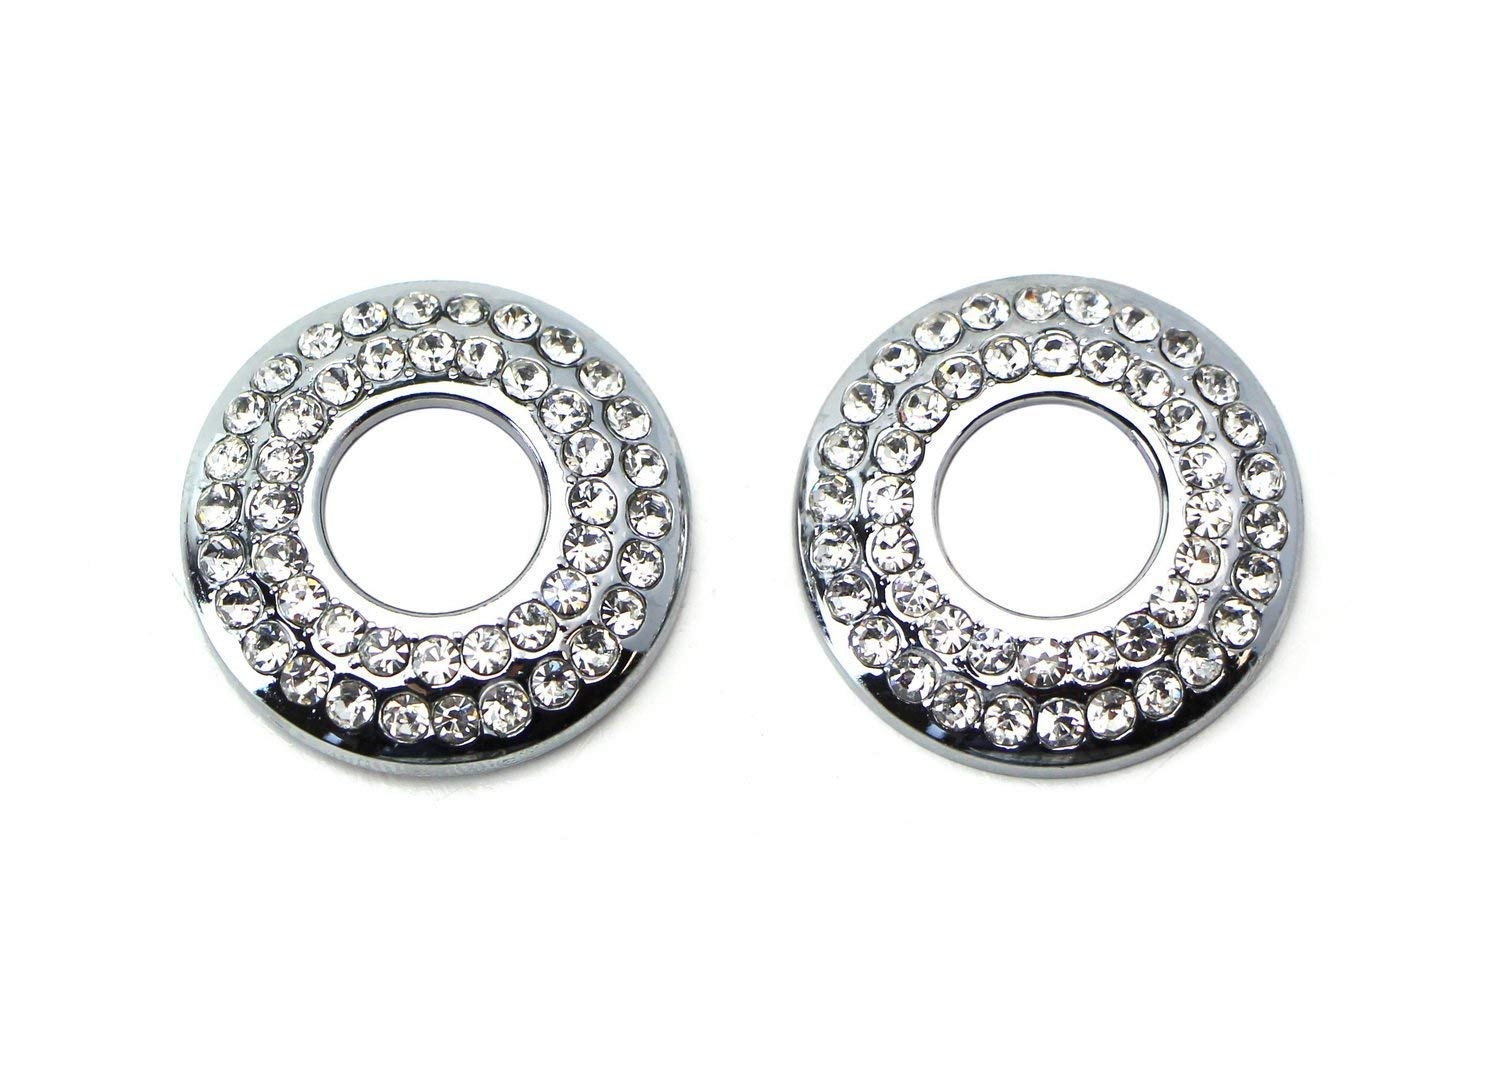 2 Bling Crystal Decor Alloy Door Lock Knob Ring Covers For MINI Cooper R55 R56 R57 R58 R59 R60 etc iJDMTOY